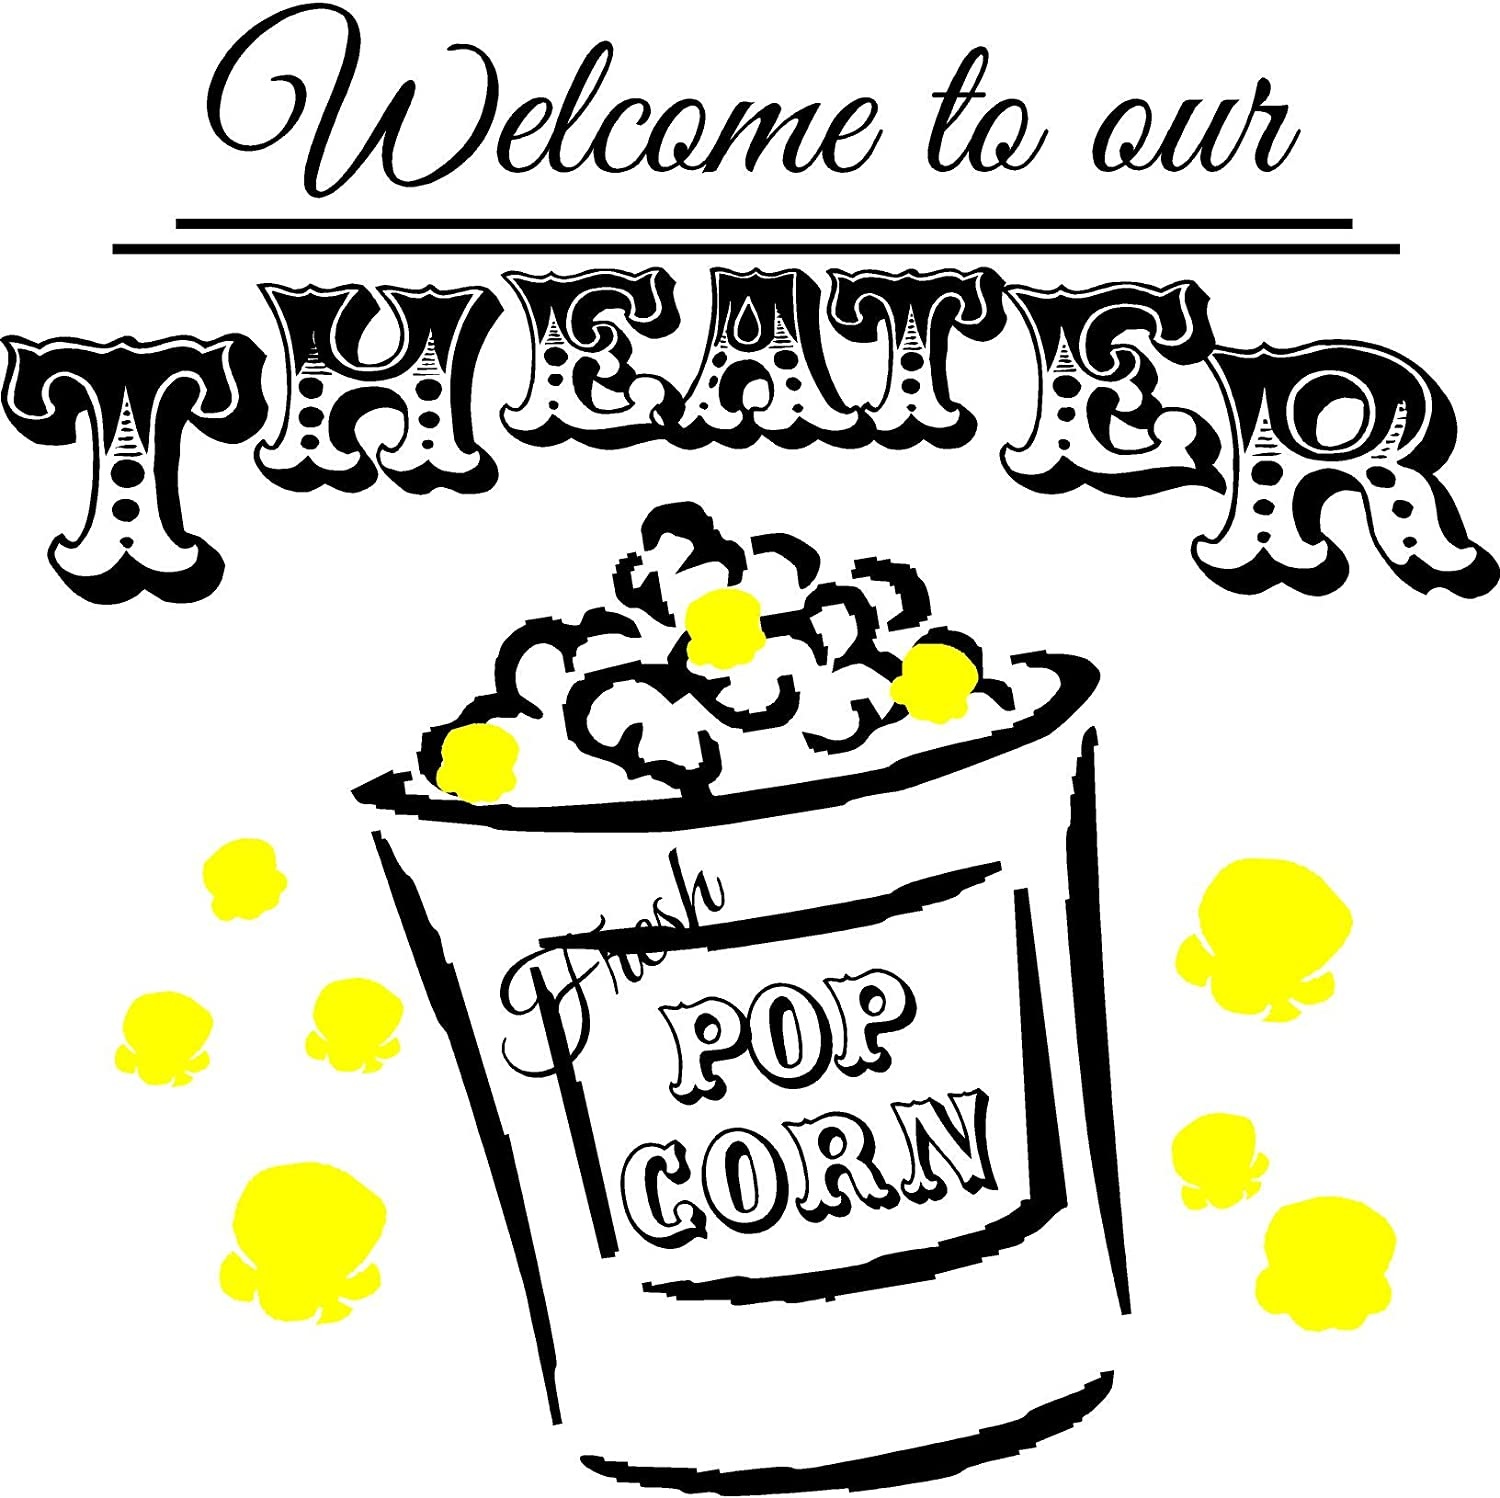 Walls with Style Welcome to Our Theater Popcorn Wall Art Decal Home Theater Movie Sticker (White)